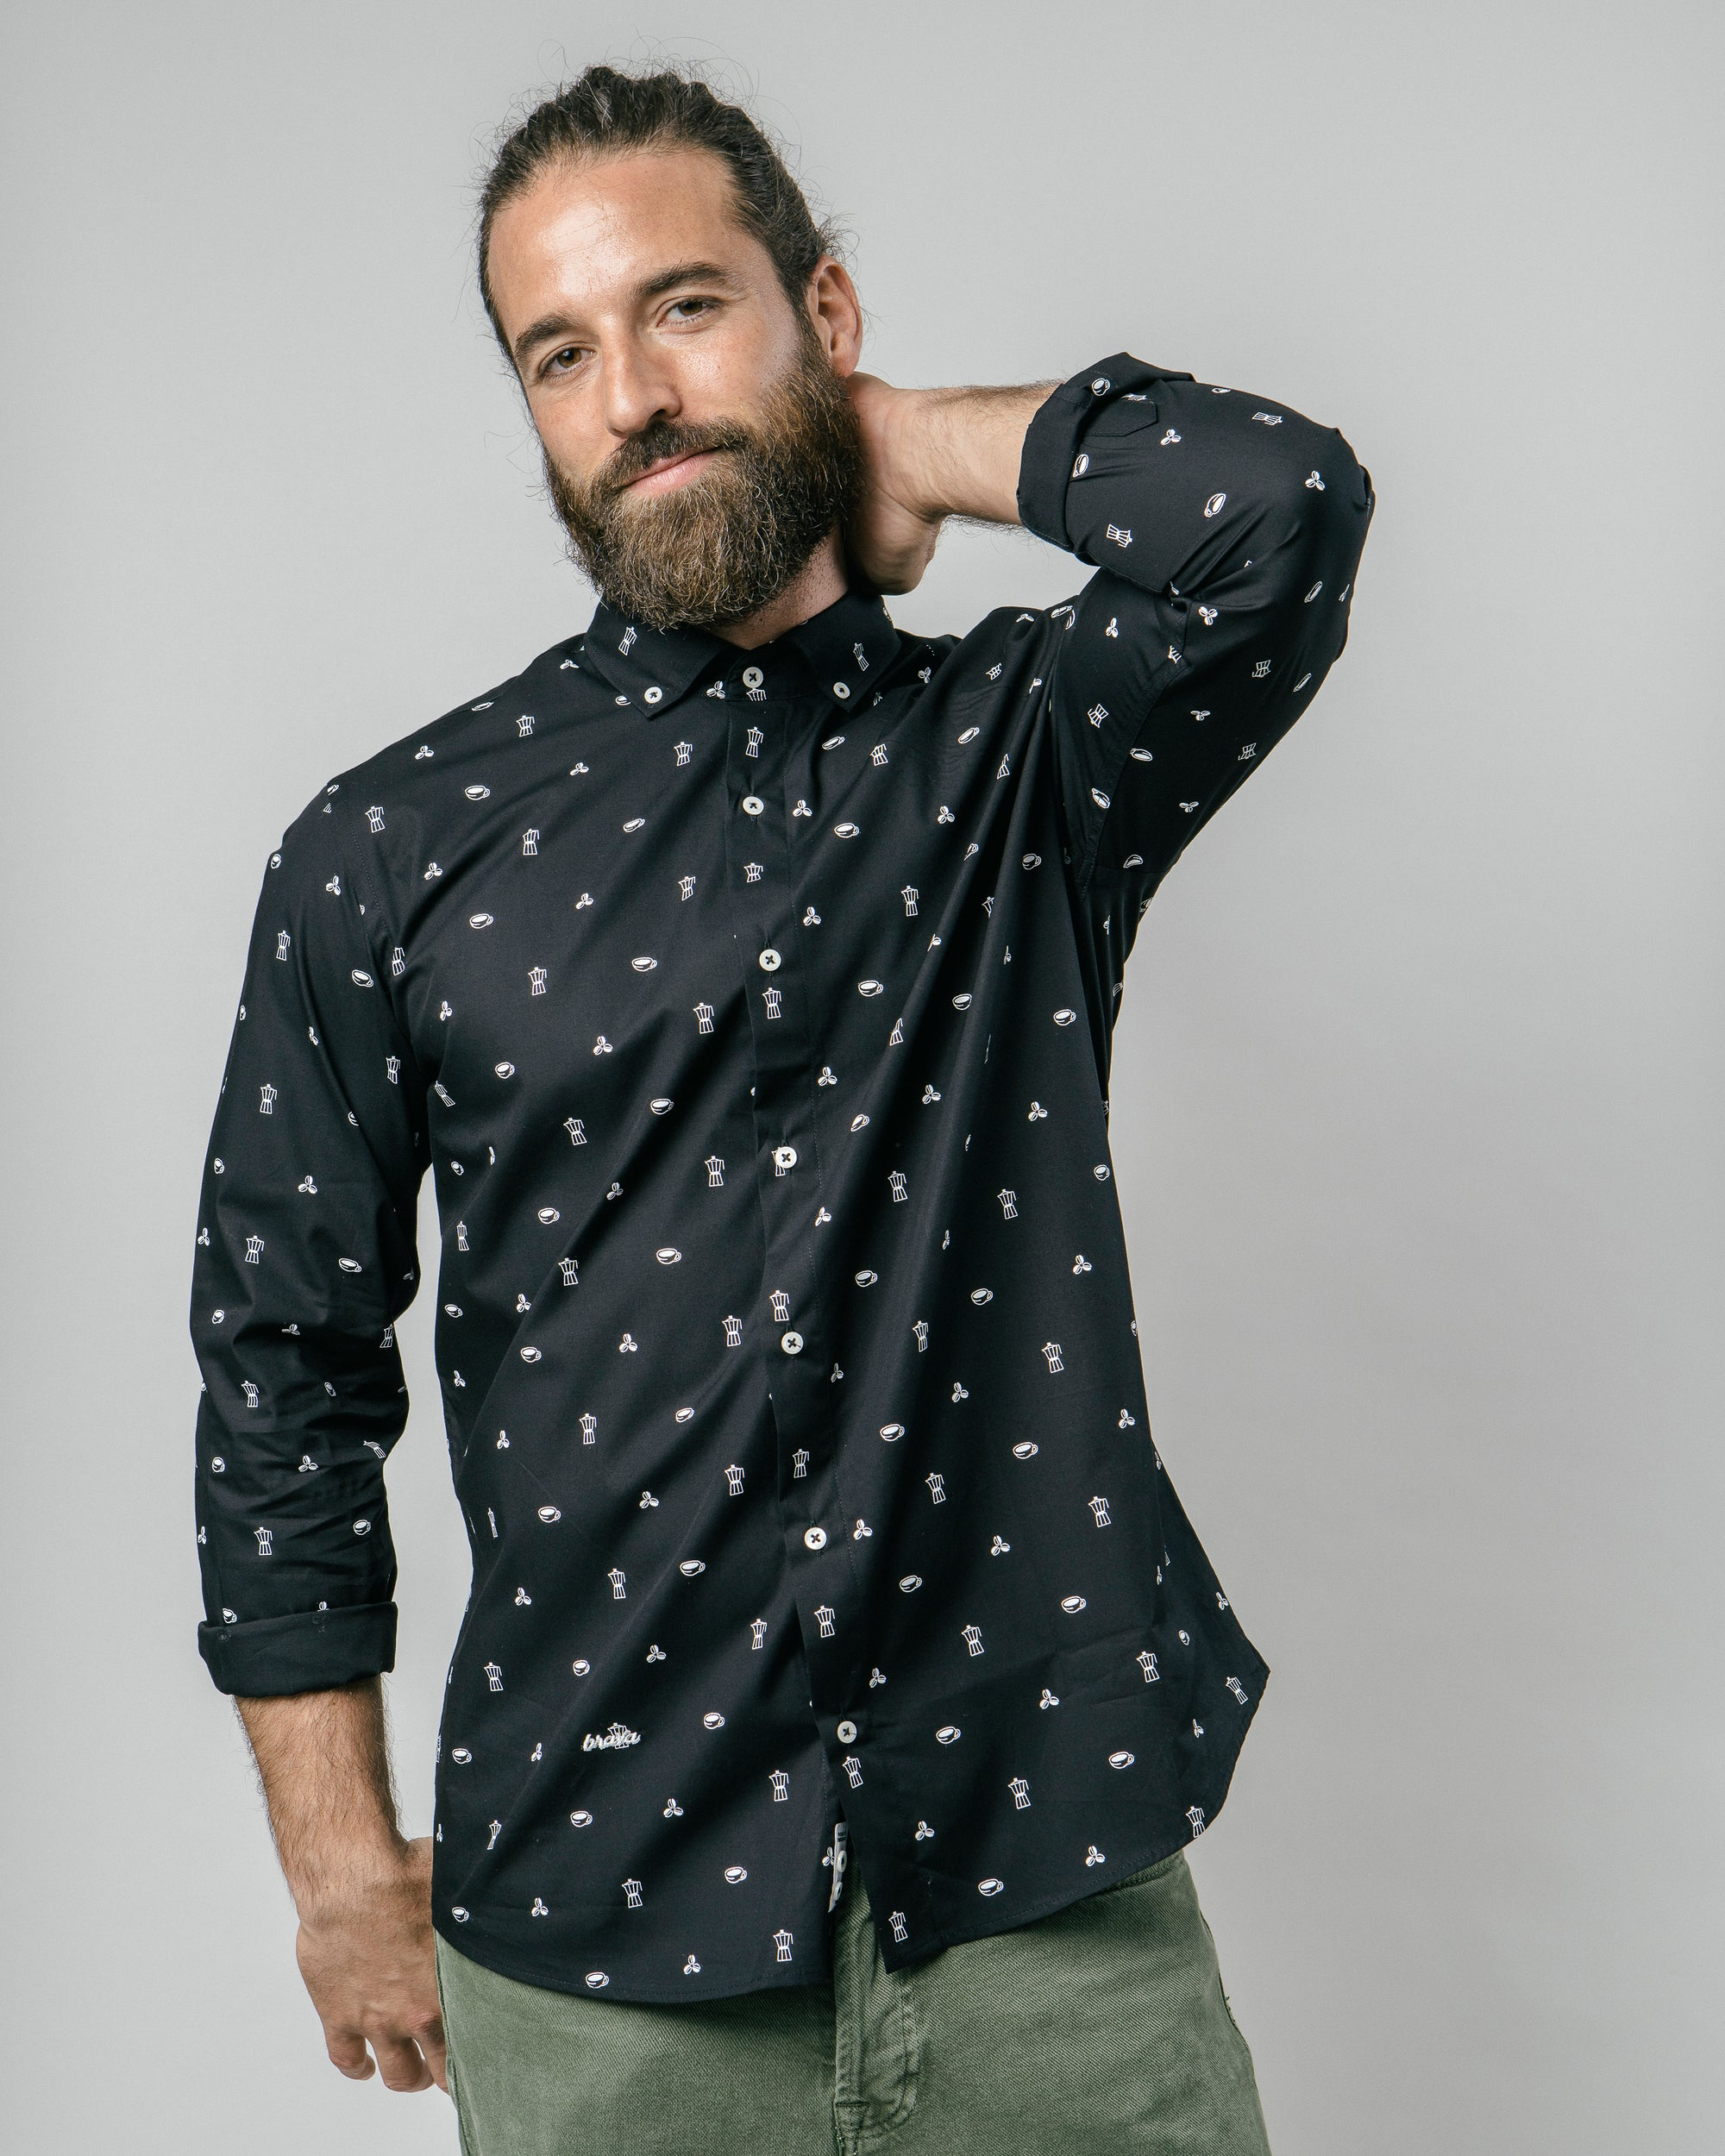 Roasted Morning Black Printed Shirt